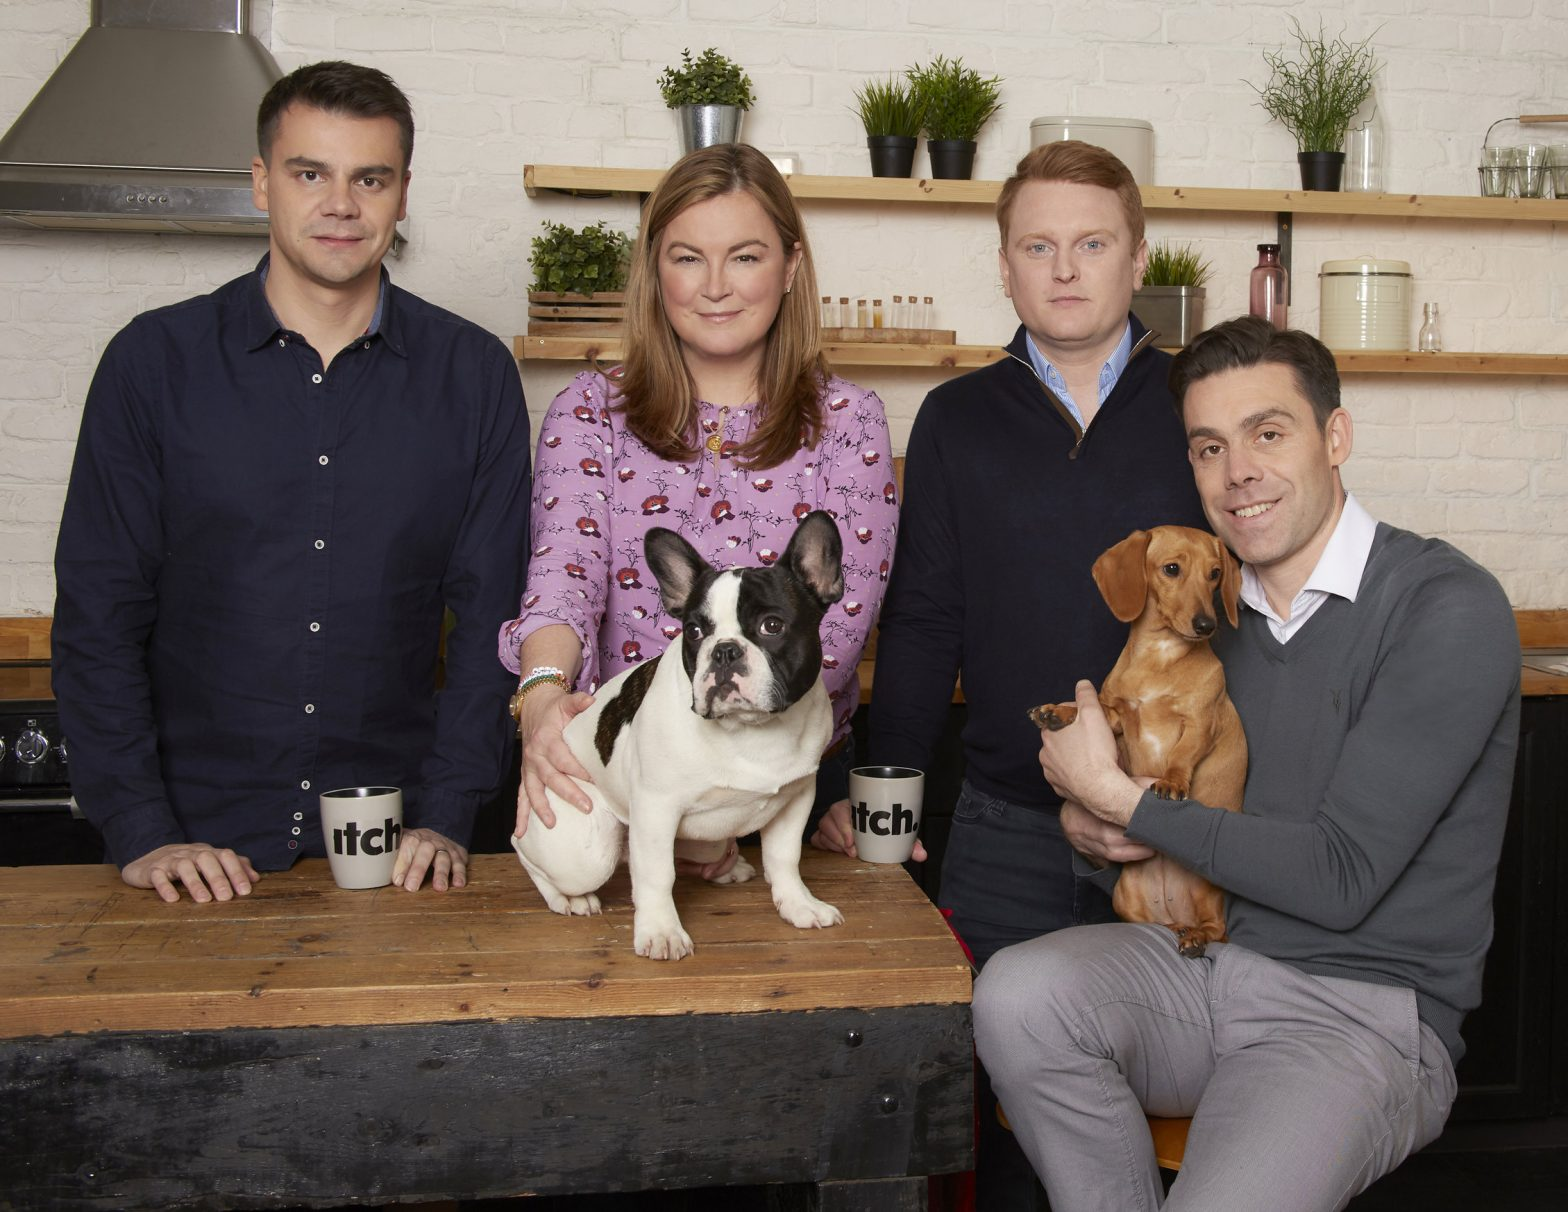 Itch secures £5 million Series A investment from SeedCamp, Nigel Wray and YYX Capital